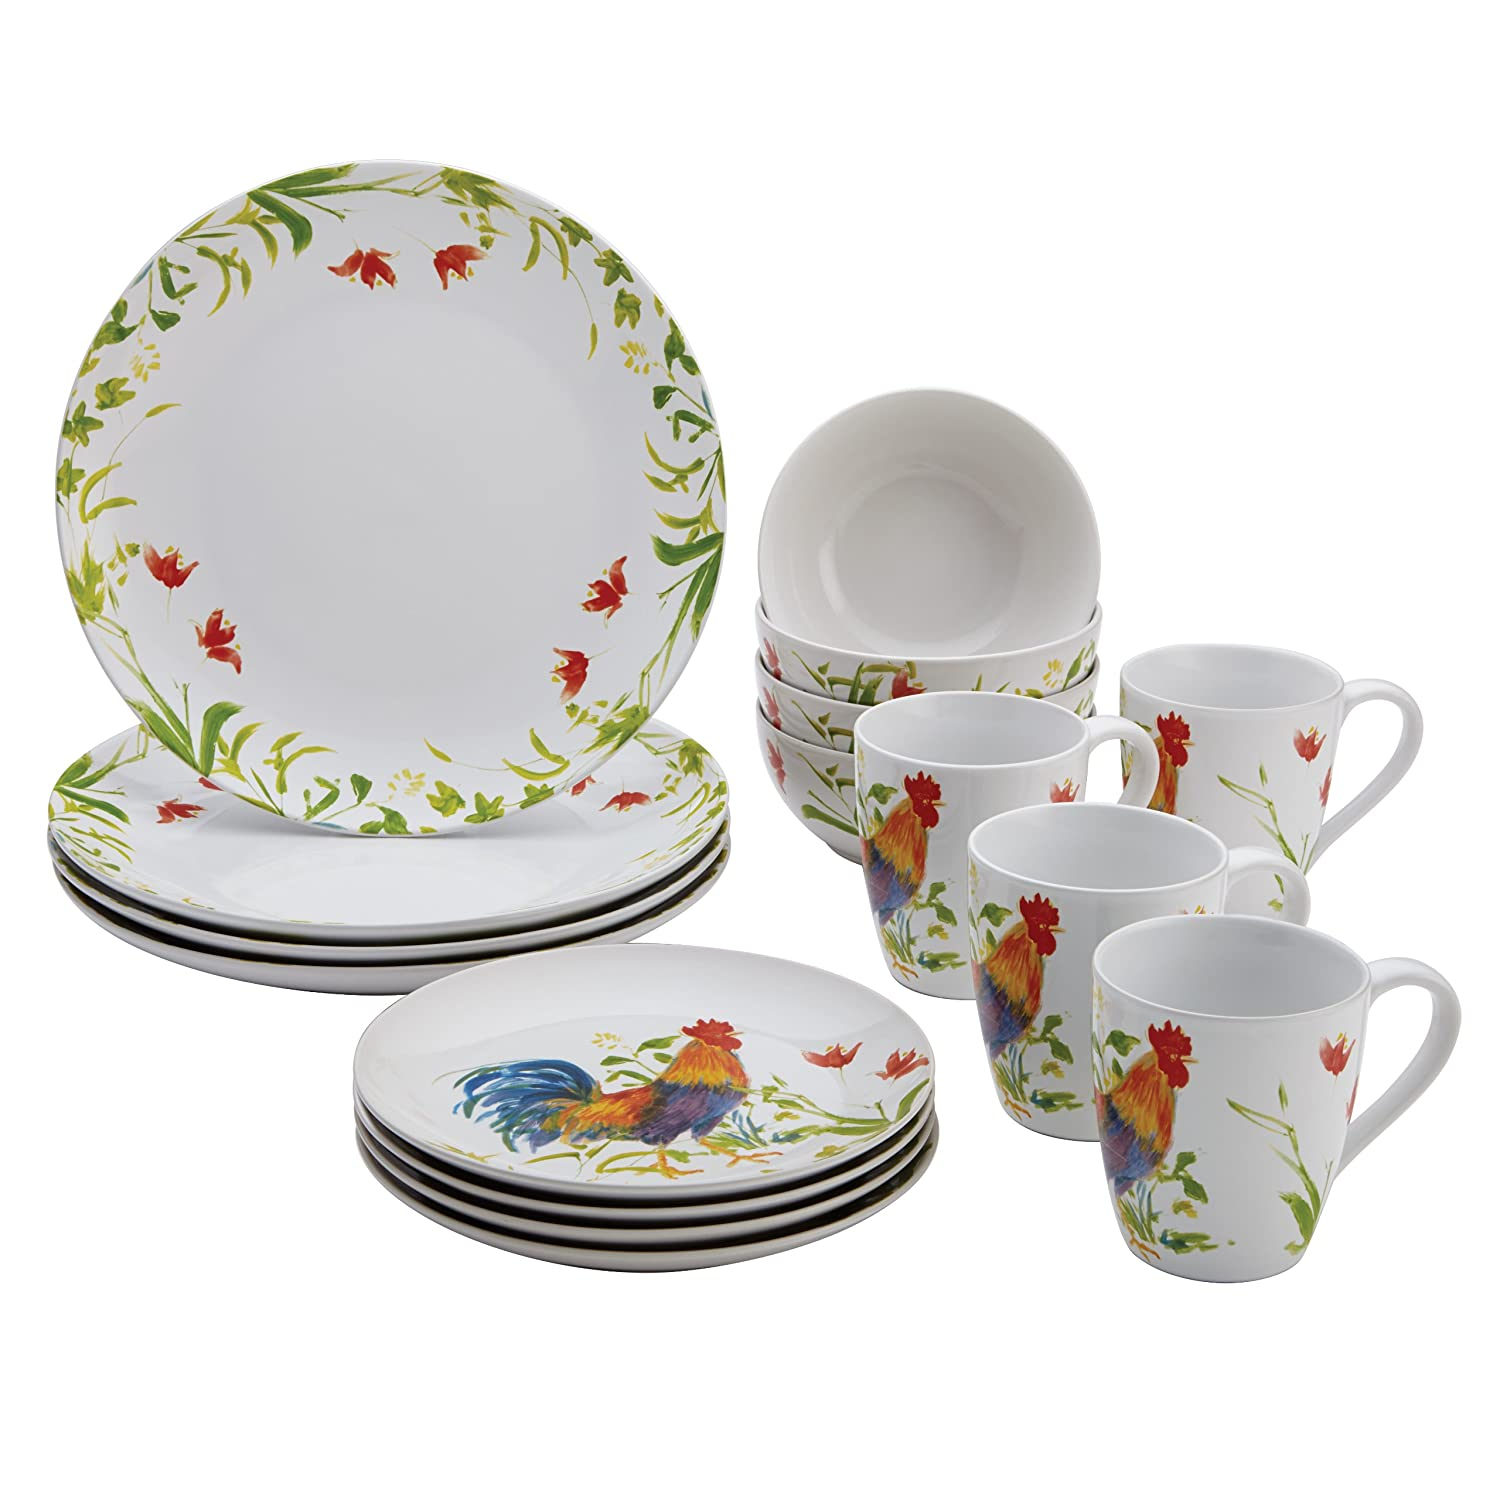 BonJour Meadow Rooster Dishes